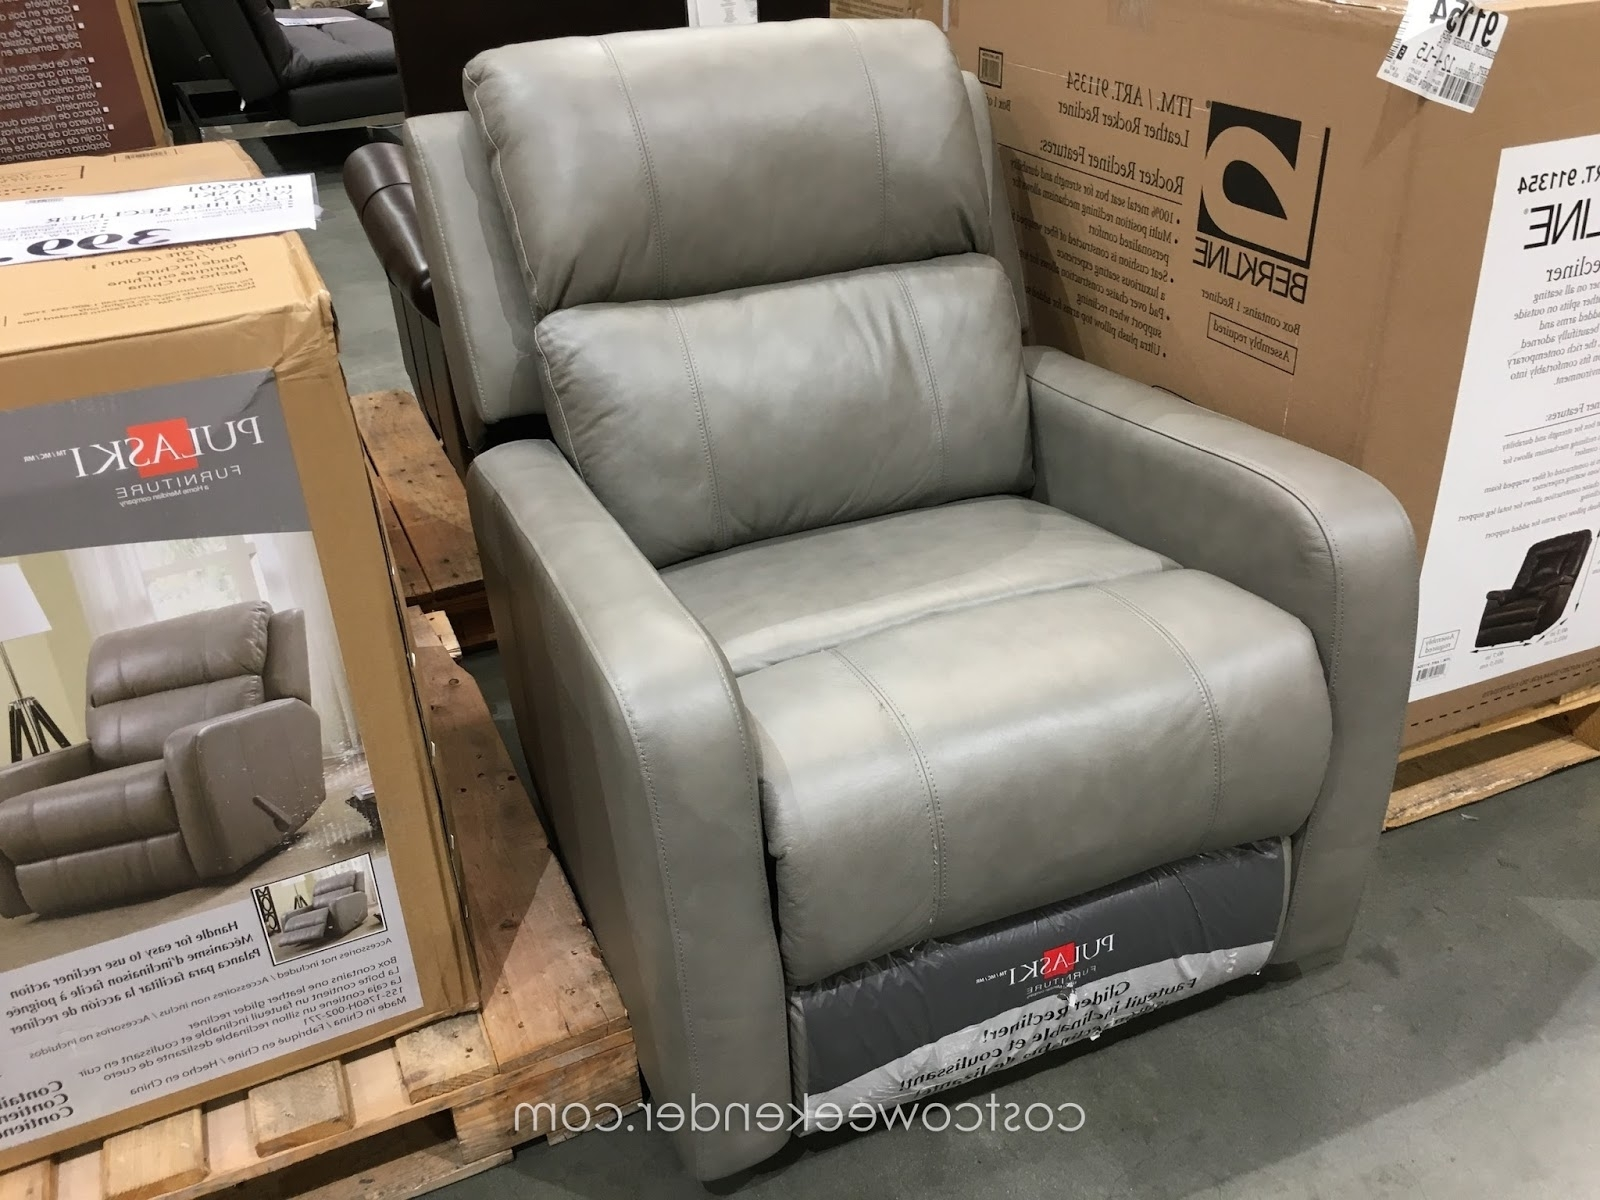 Latest Chair : Beach Chairs Costco Camping Tommy Bahama Chair Outdoor Intended For Rocking Chairs At Costco (View 12 of 20)